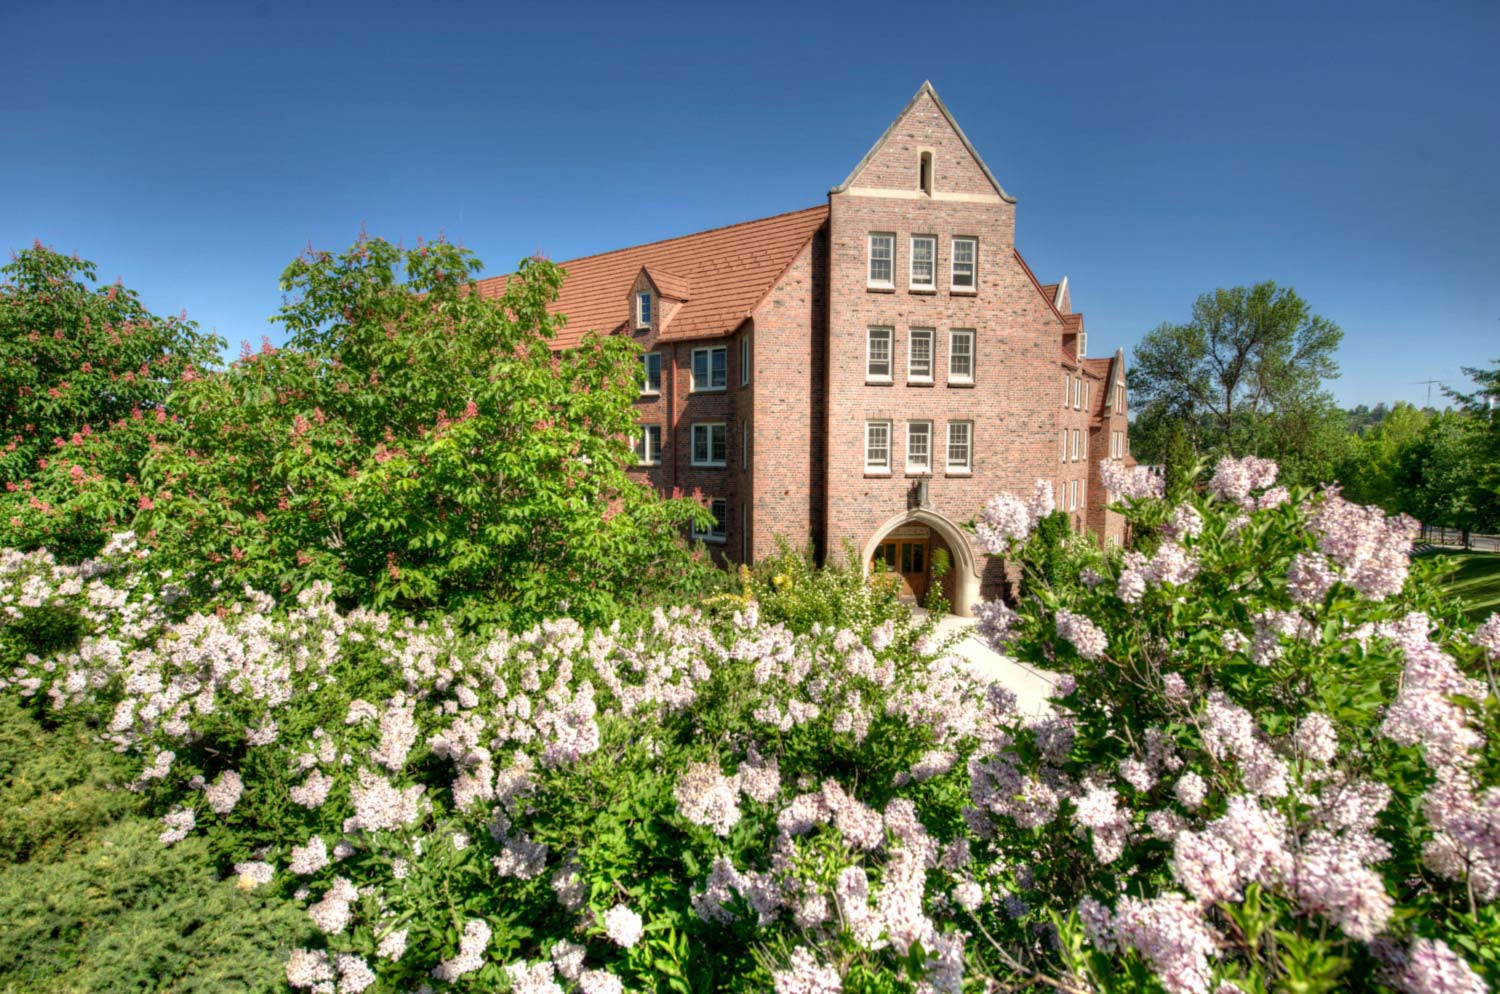 Brink Hall during springtime